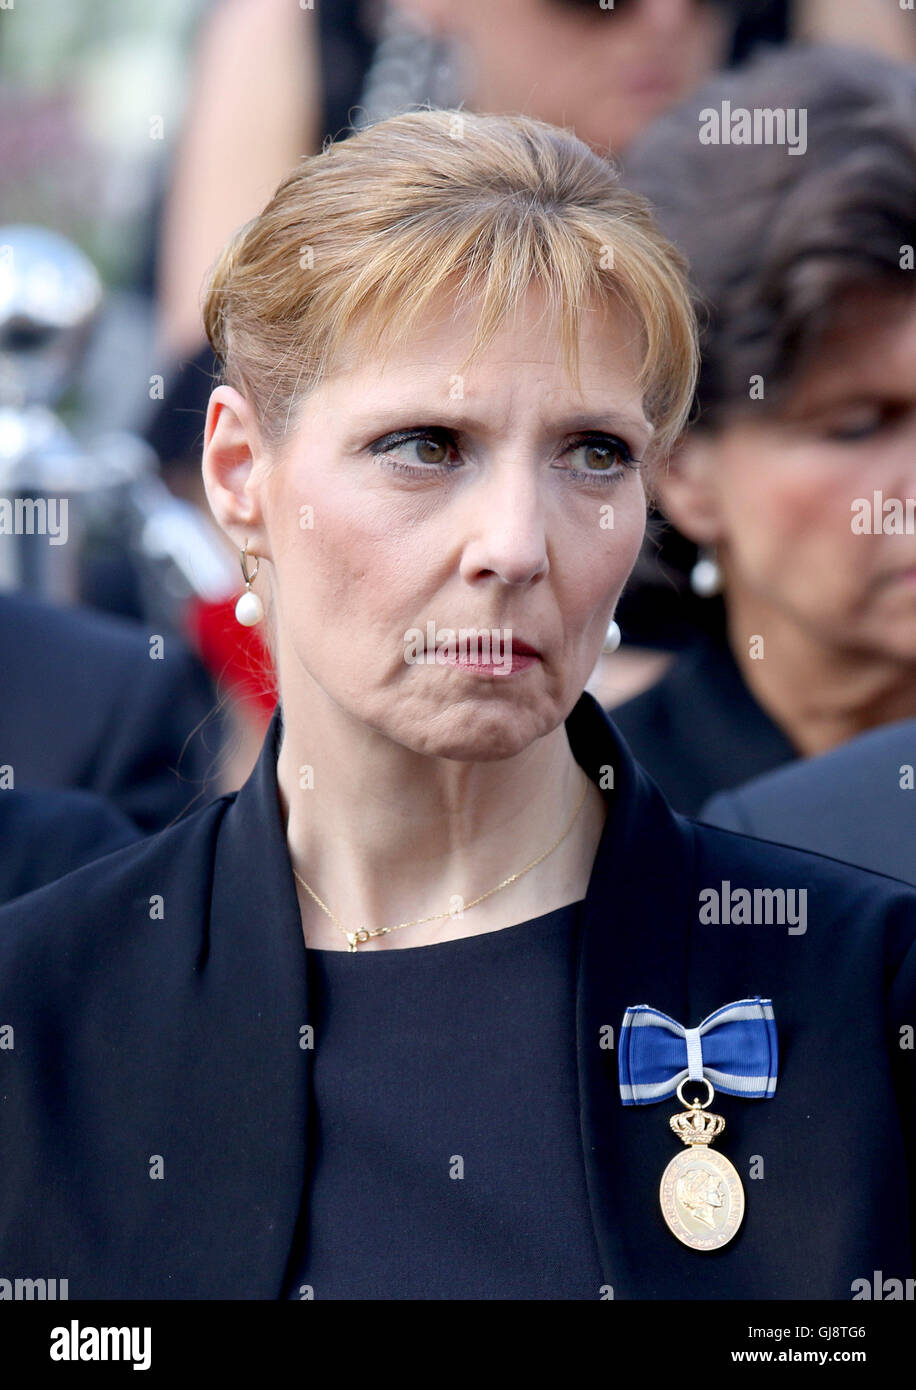 Bucharest, Romania. 13th Aug, 2016. Princess Maria of Romania takes part in the burial ceremony for late Queen Ana of Romania, who died 01 08 2016 in Morges (Switzerland), at Curtea de Arges in Bucharest, Romania, 13 August 2016. Photo: Albert Nieboer//dpa/Alamy Live News Stock Photo